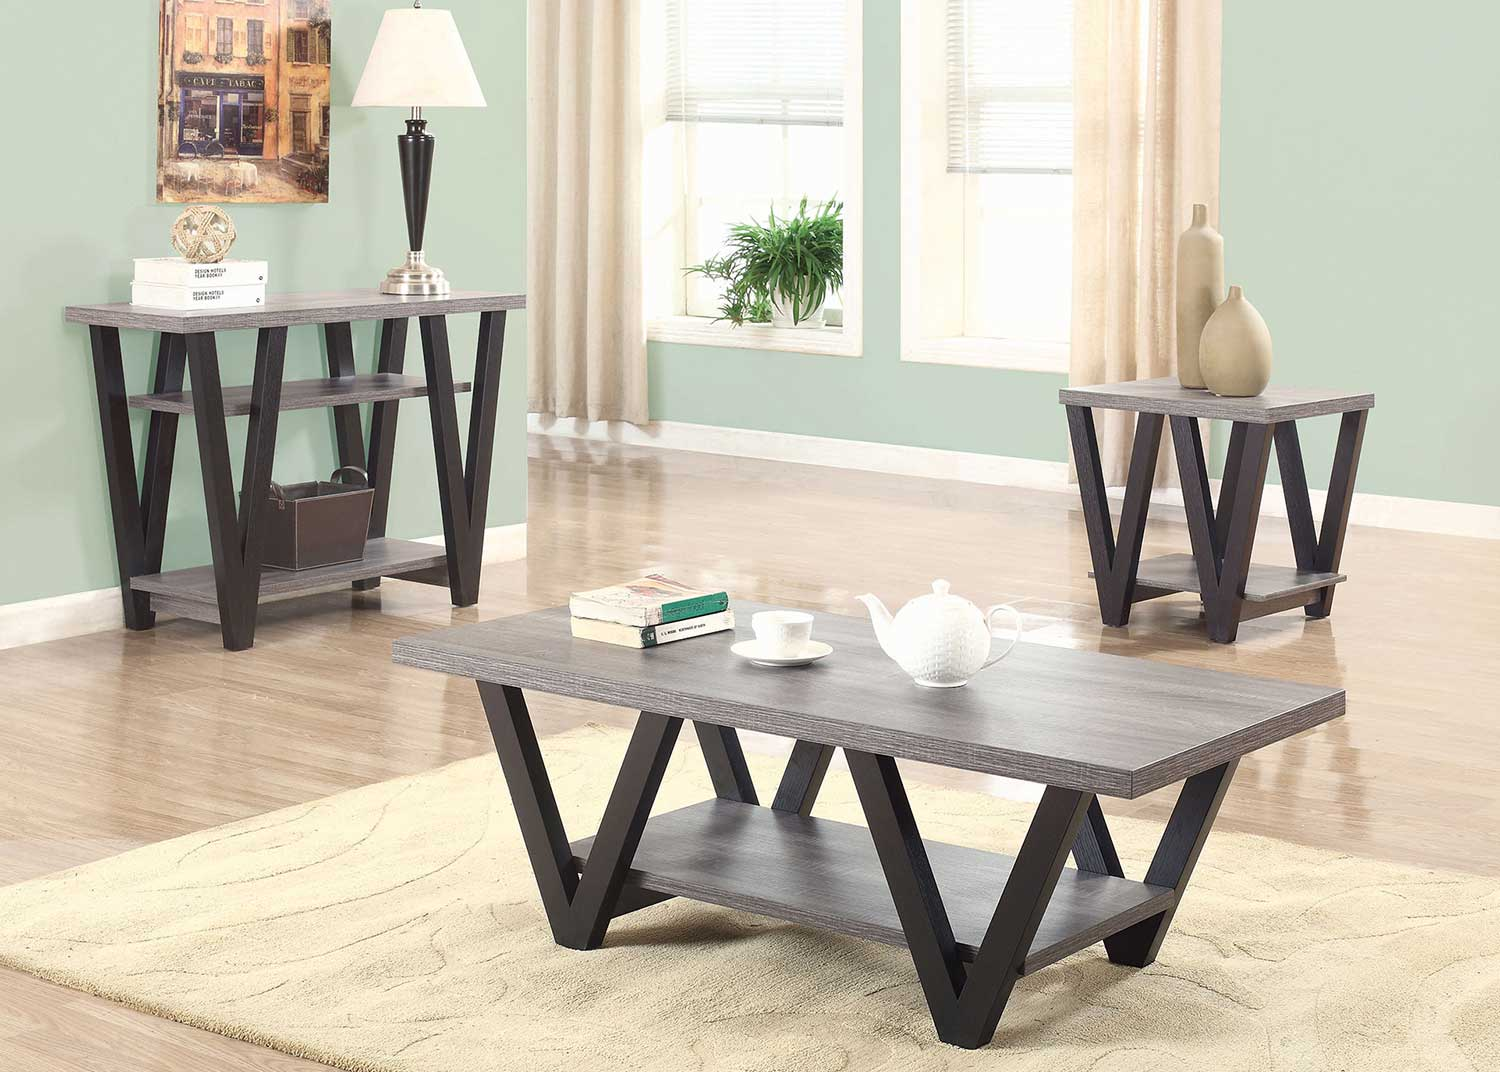 Coaster 705398 Occasional/Coffee Table Set - Antique Grey/Black